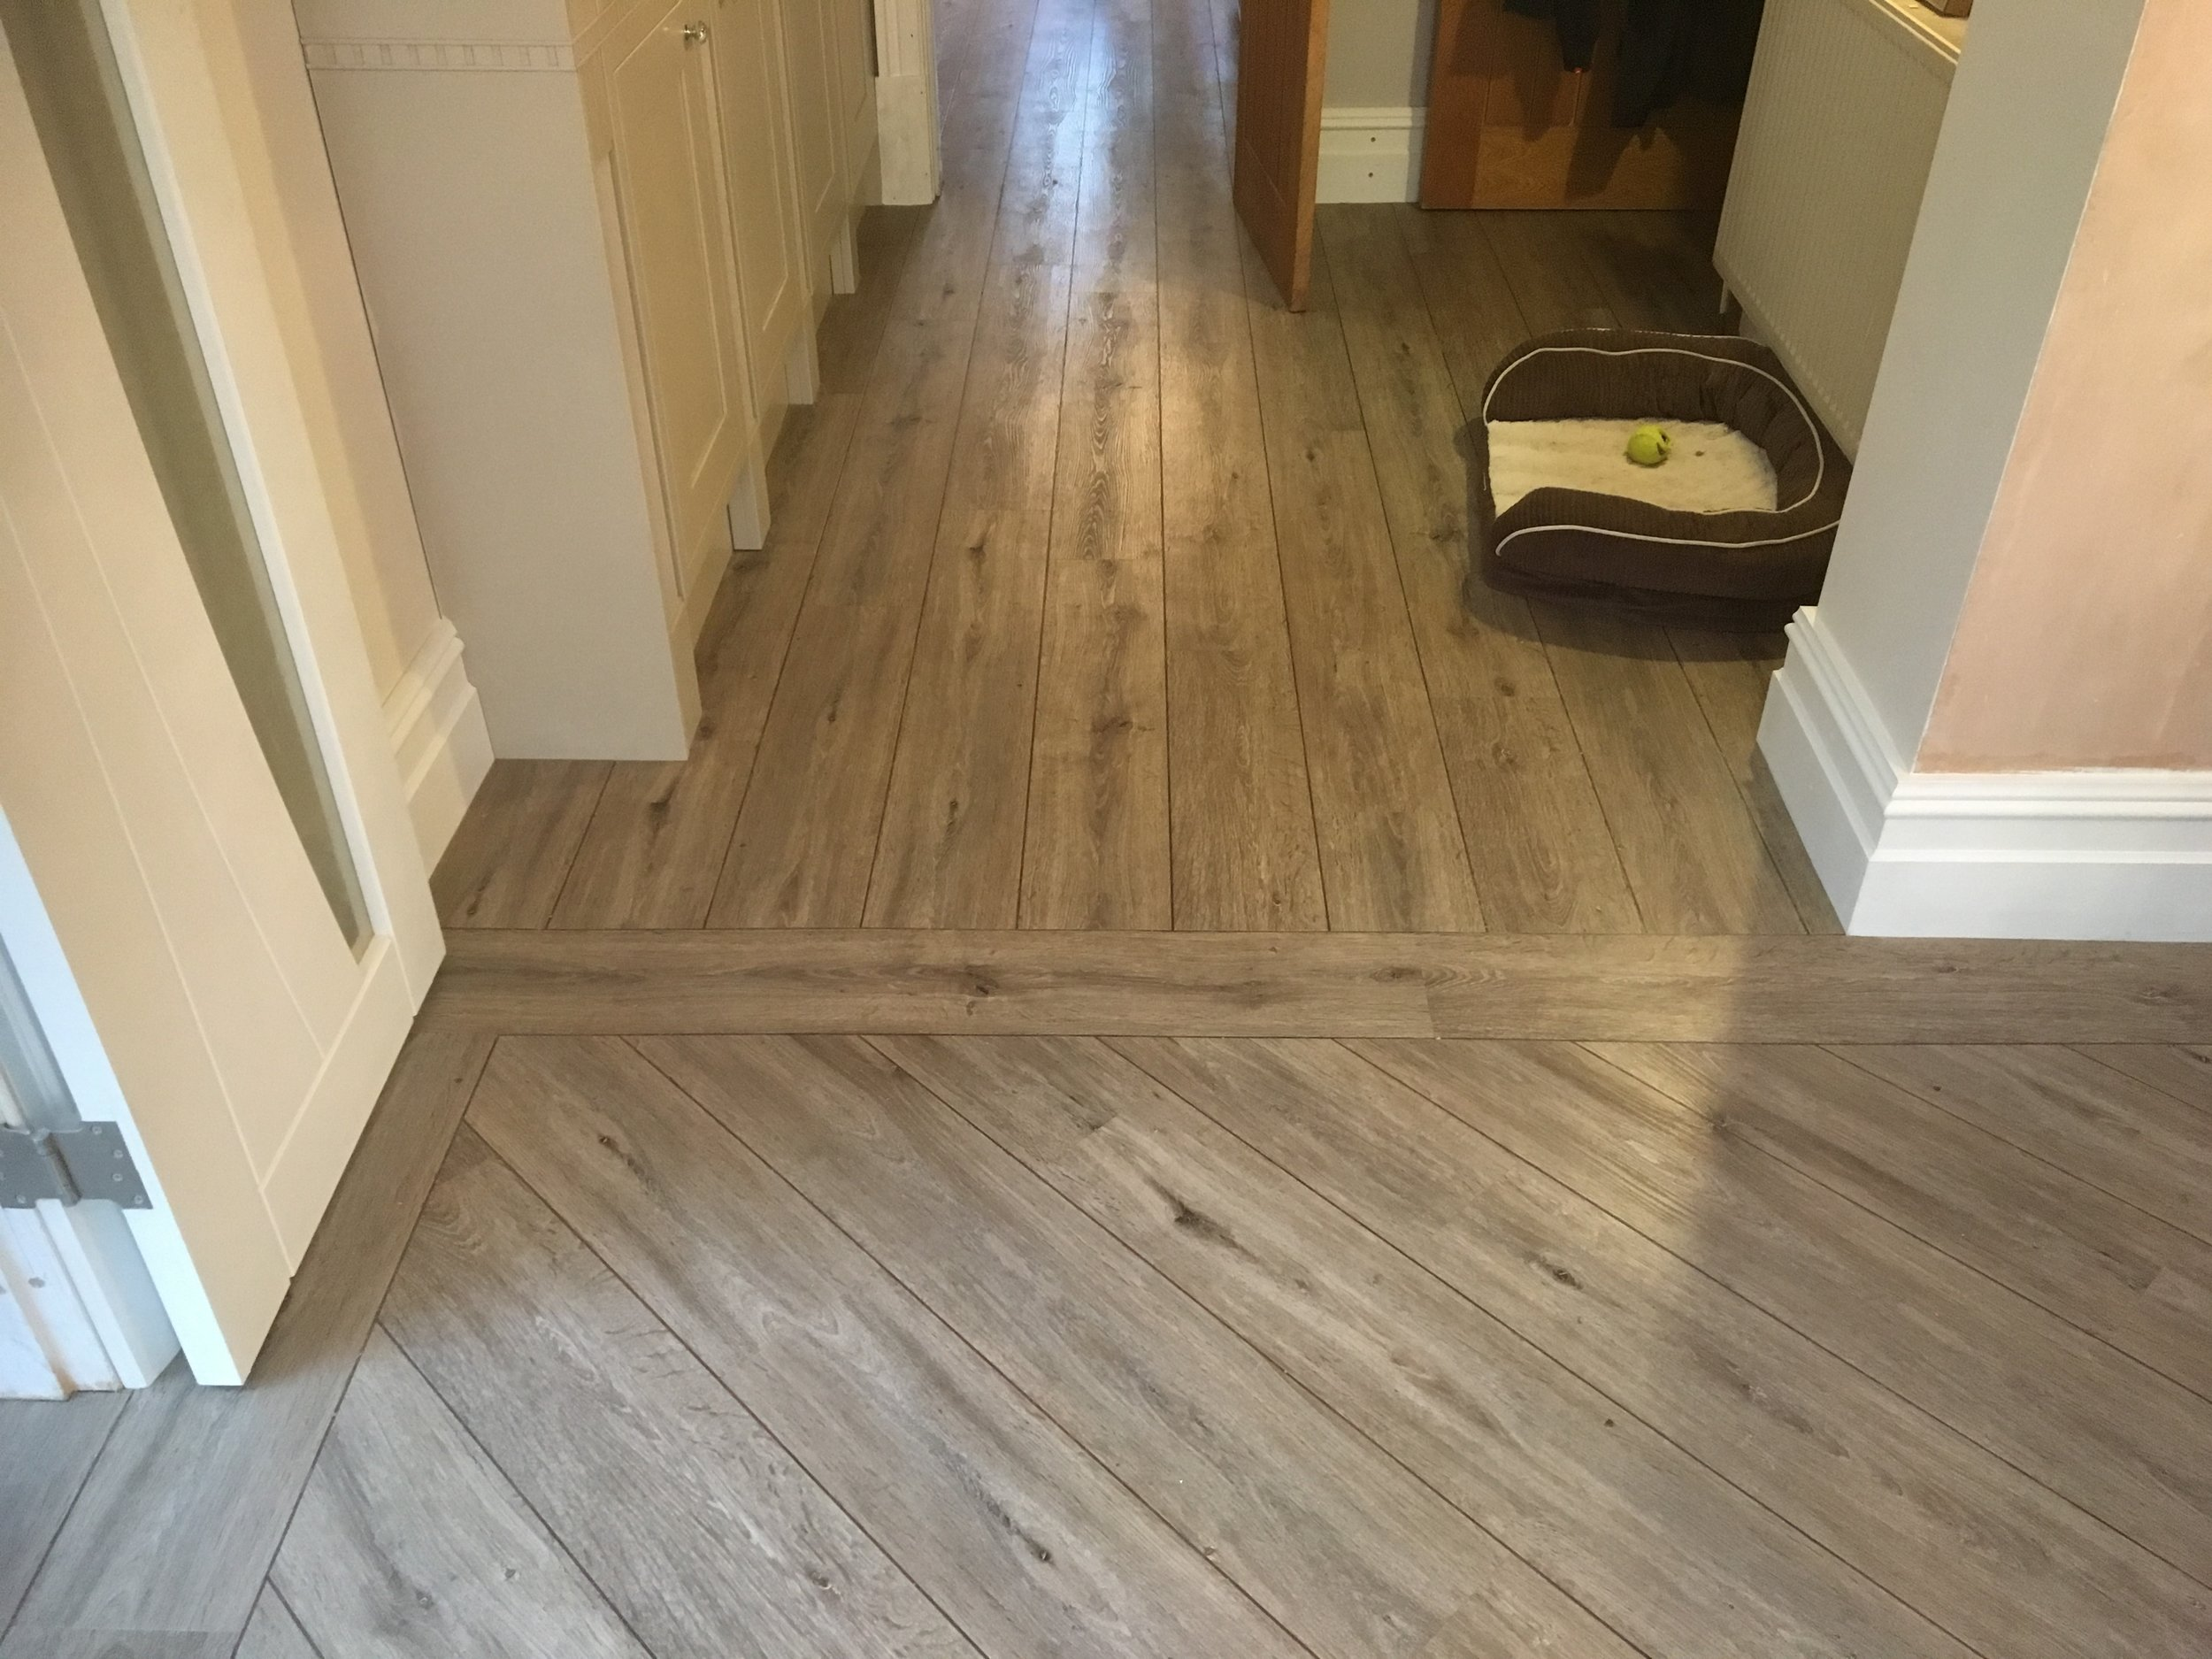 Installed by Steve Holland Flooring